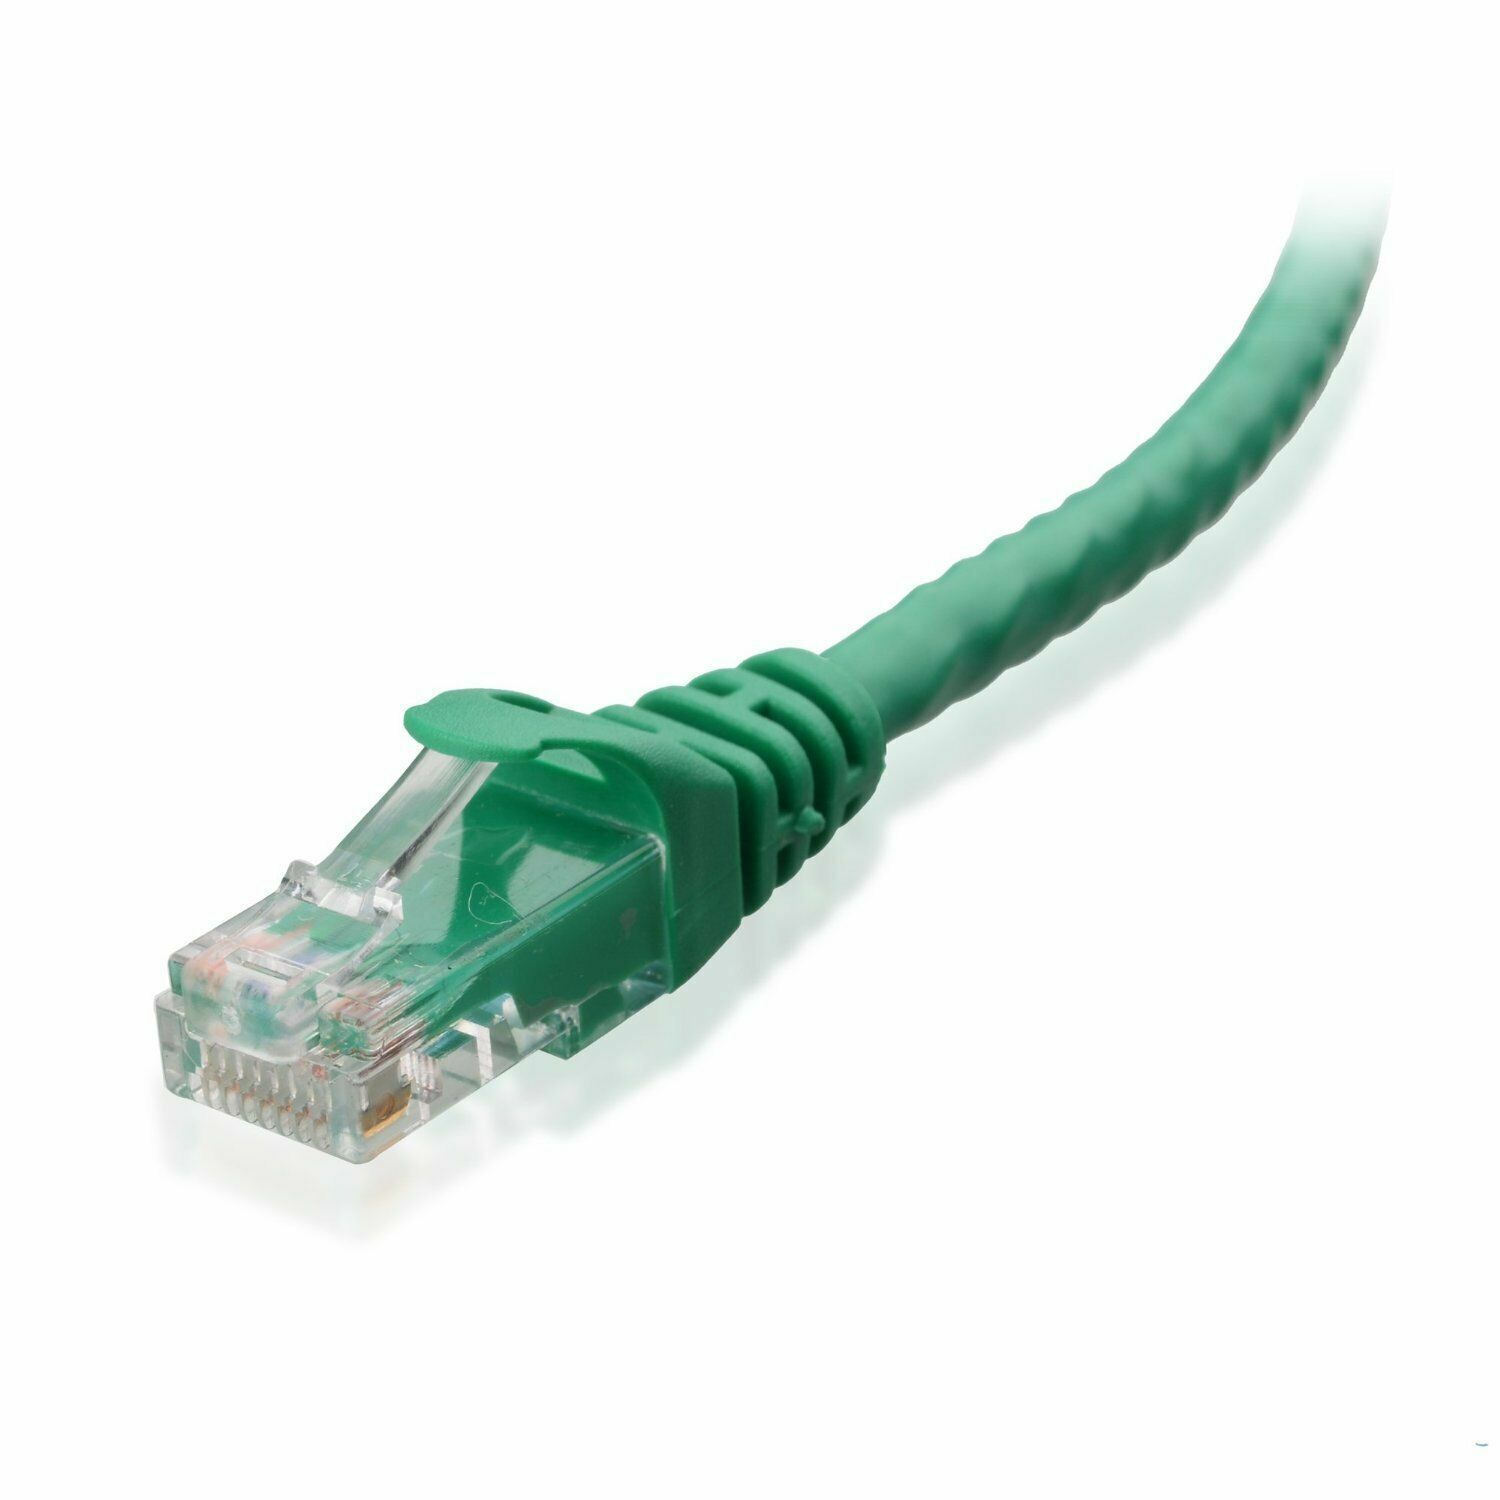 NEW - Cable Matters 5-Pack, Cat6 Snagless Ethernet Patch Cab